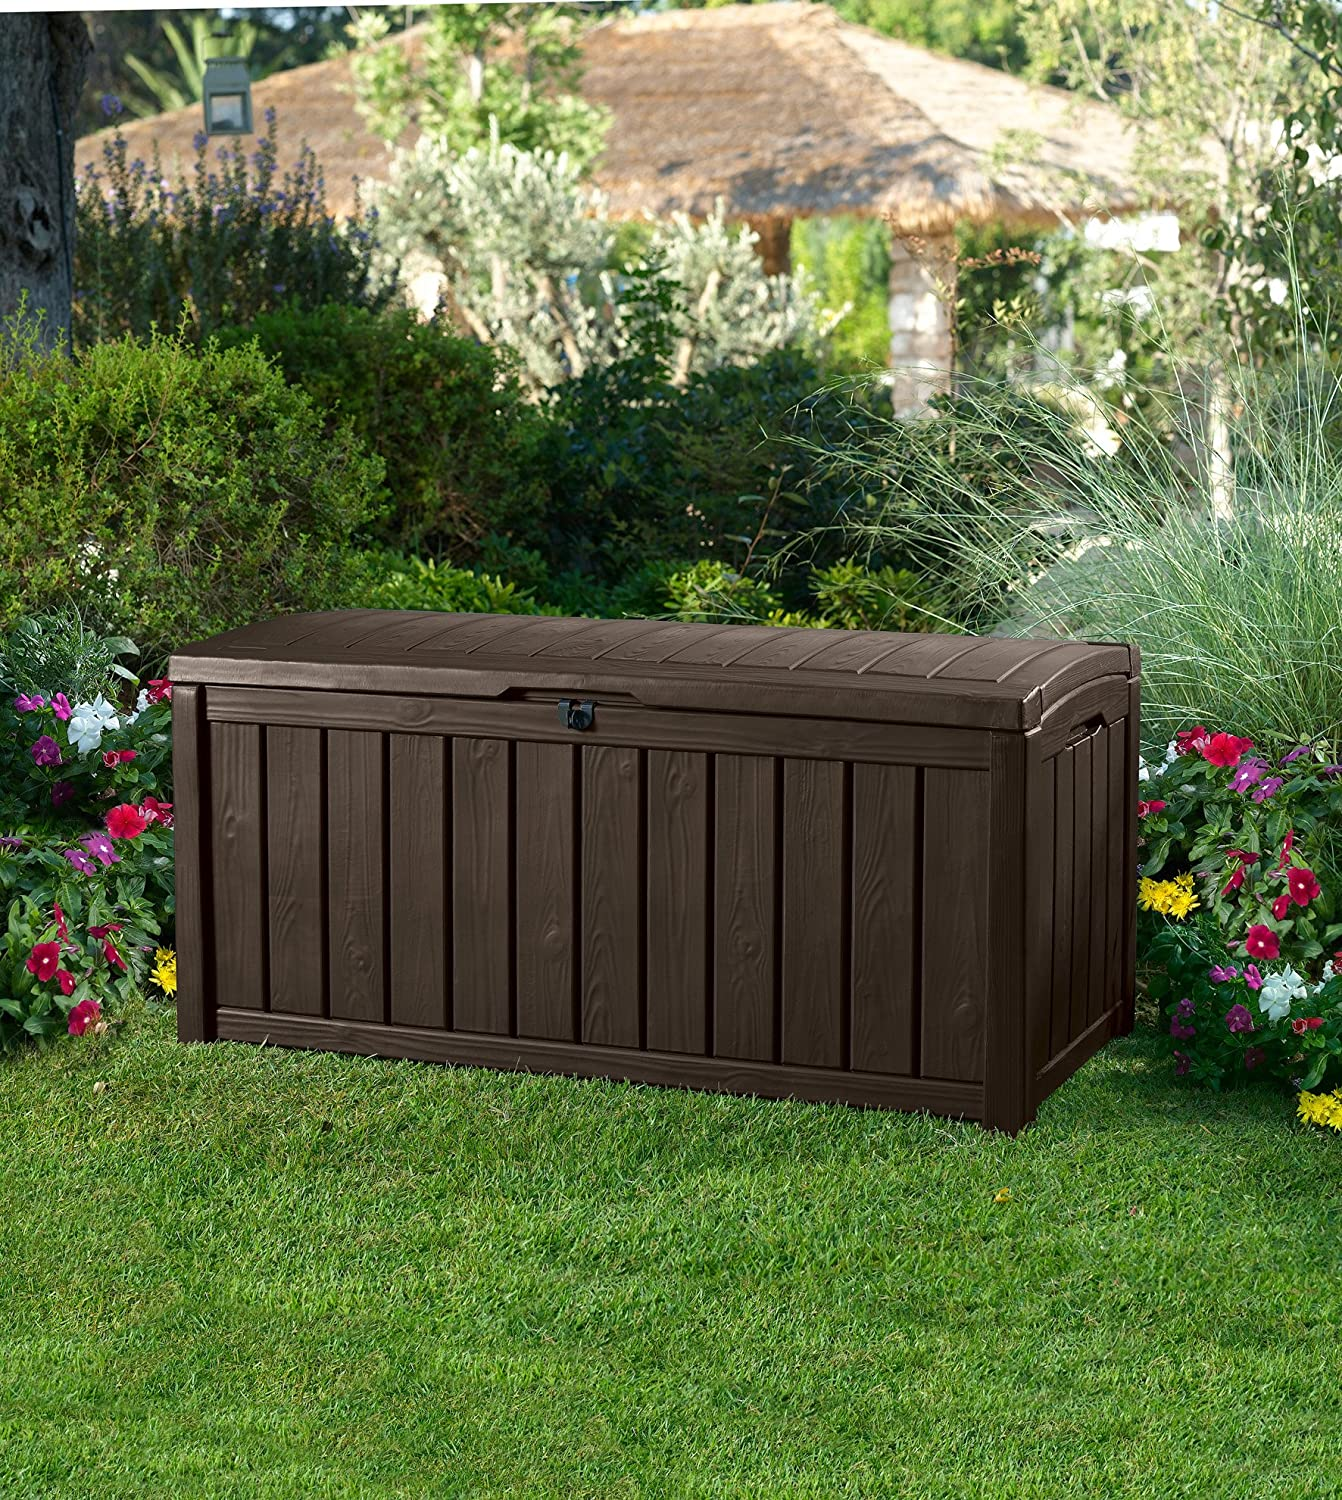 Amazon.com: Keter Glenwood Plastic Deck Storage Container Box Outdoor Patio  Furniture 101 Gal, Brown: Garden U0026 Outdoor